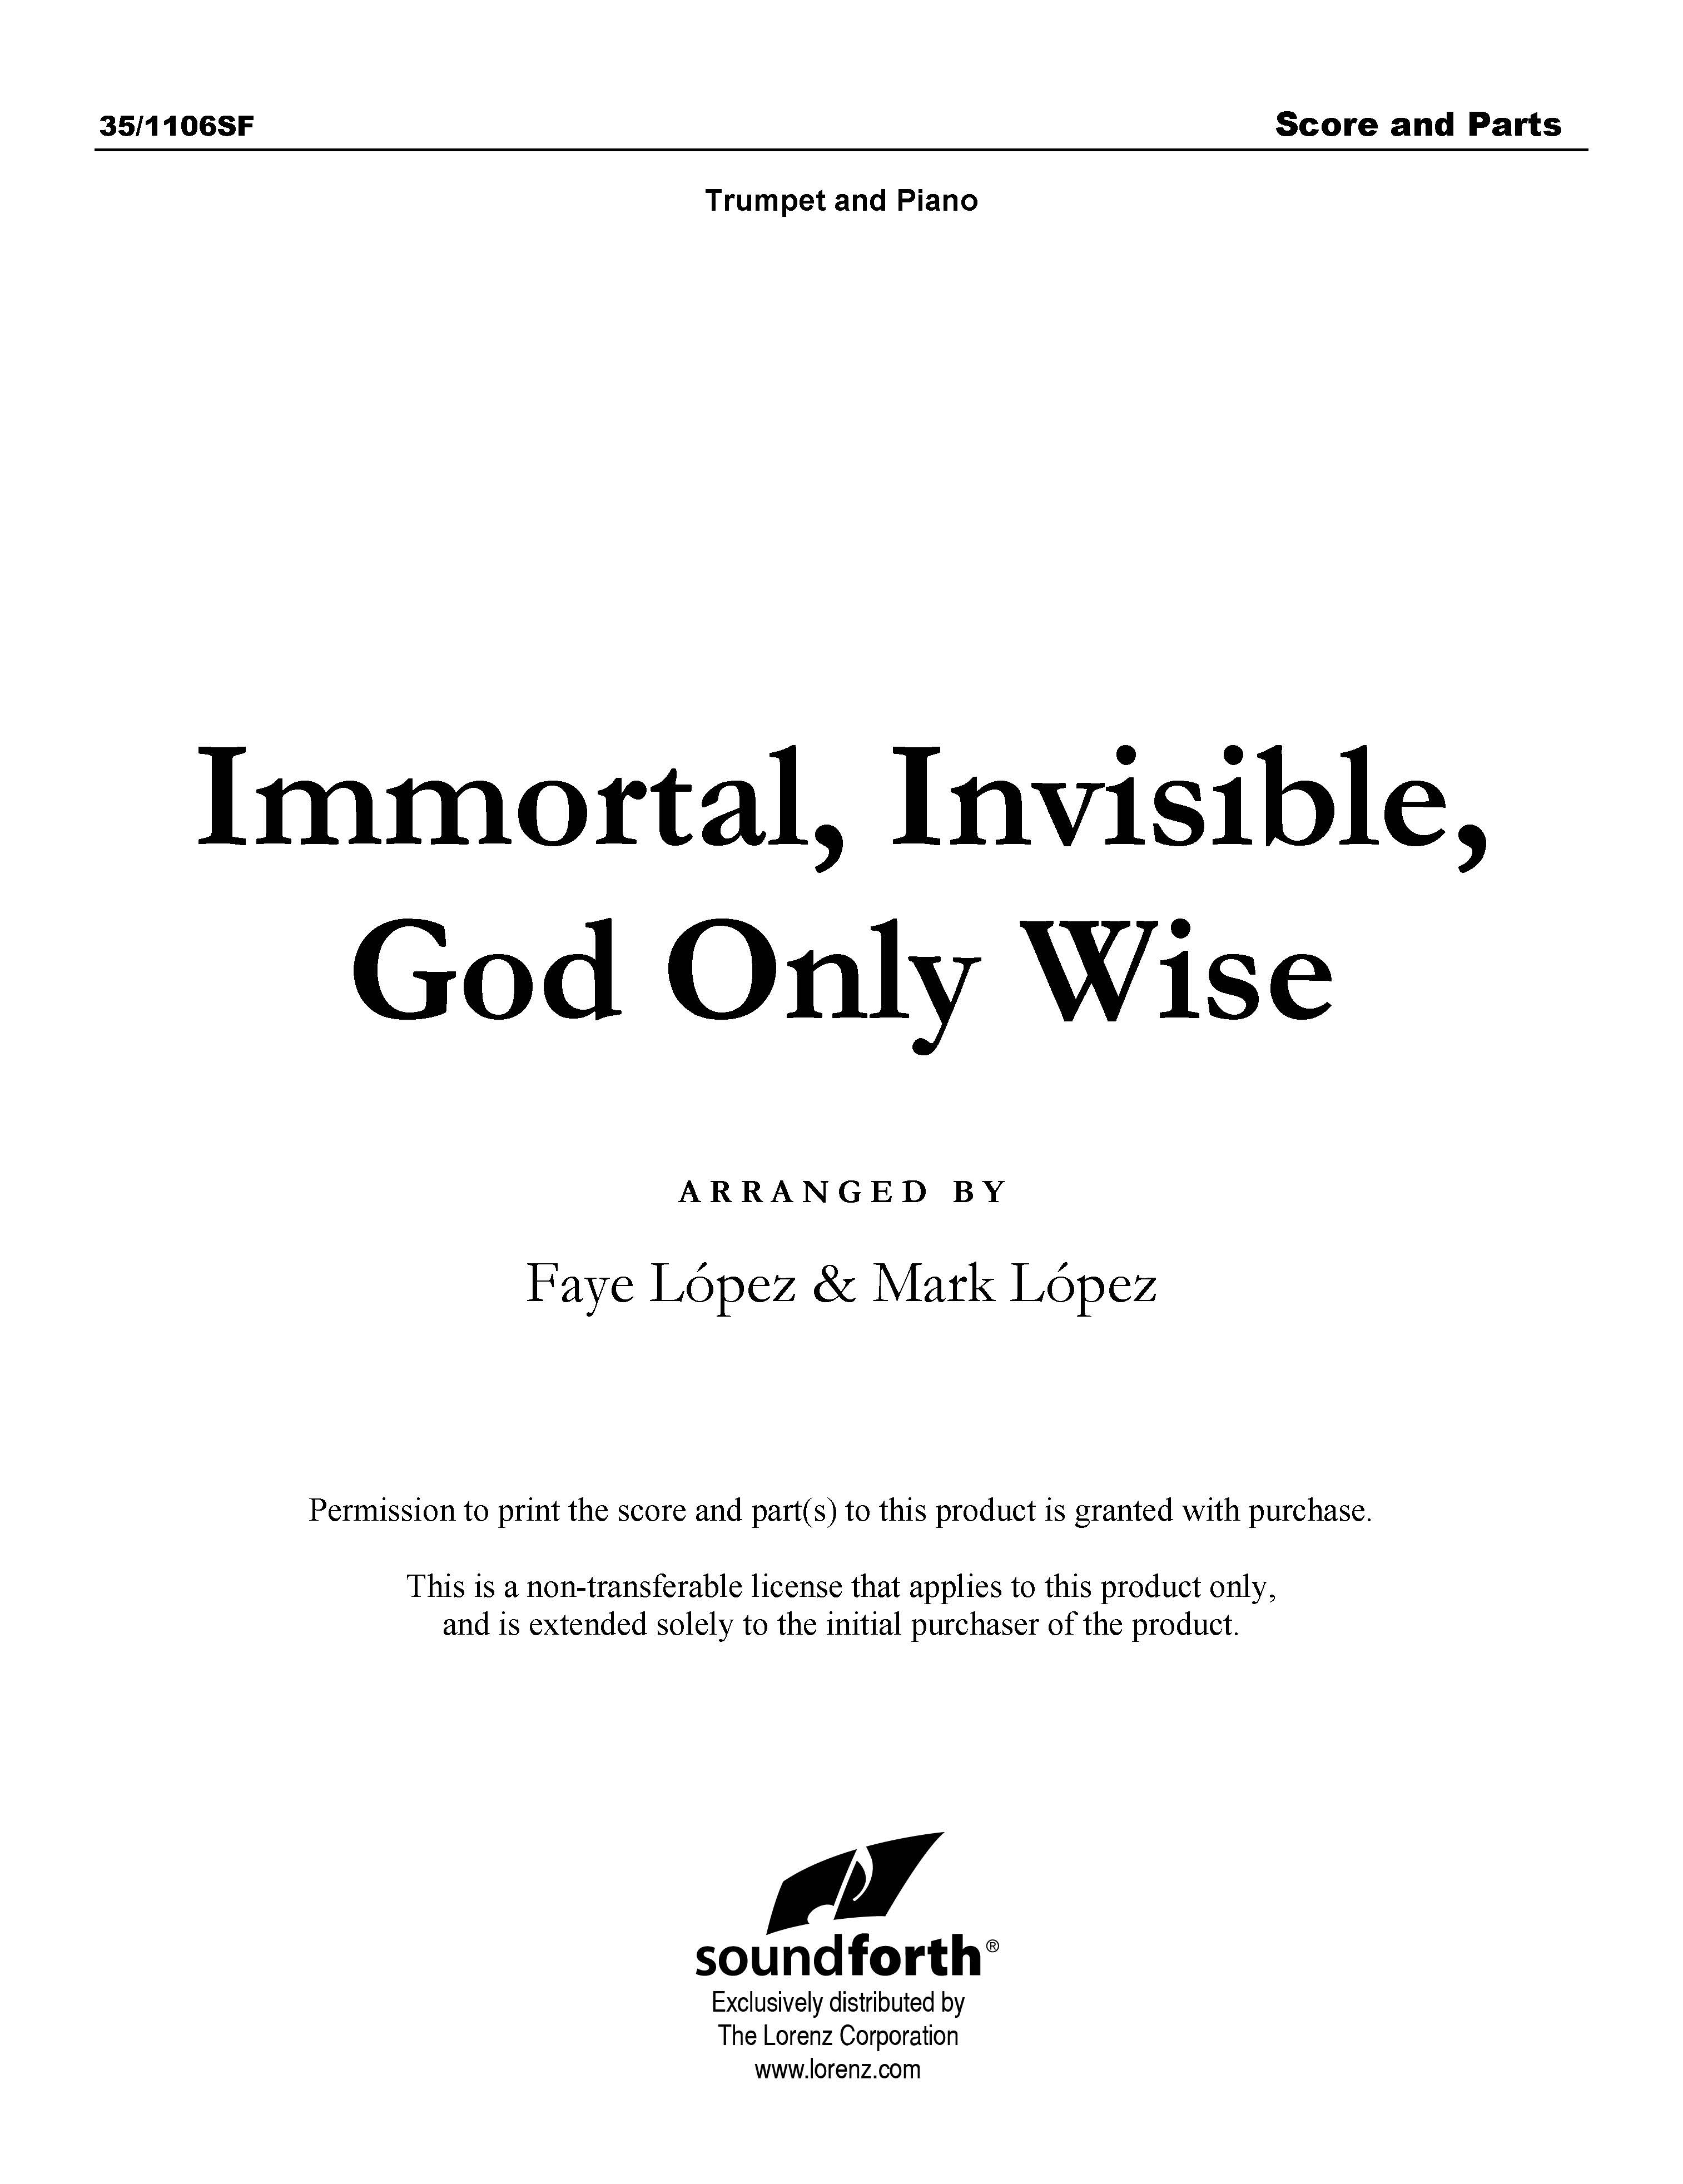 Immortal, Invisible, God Only Wise (Digital Delivery)